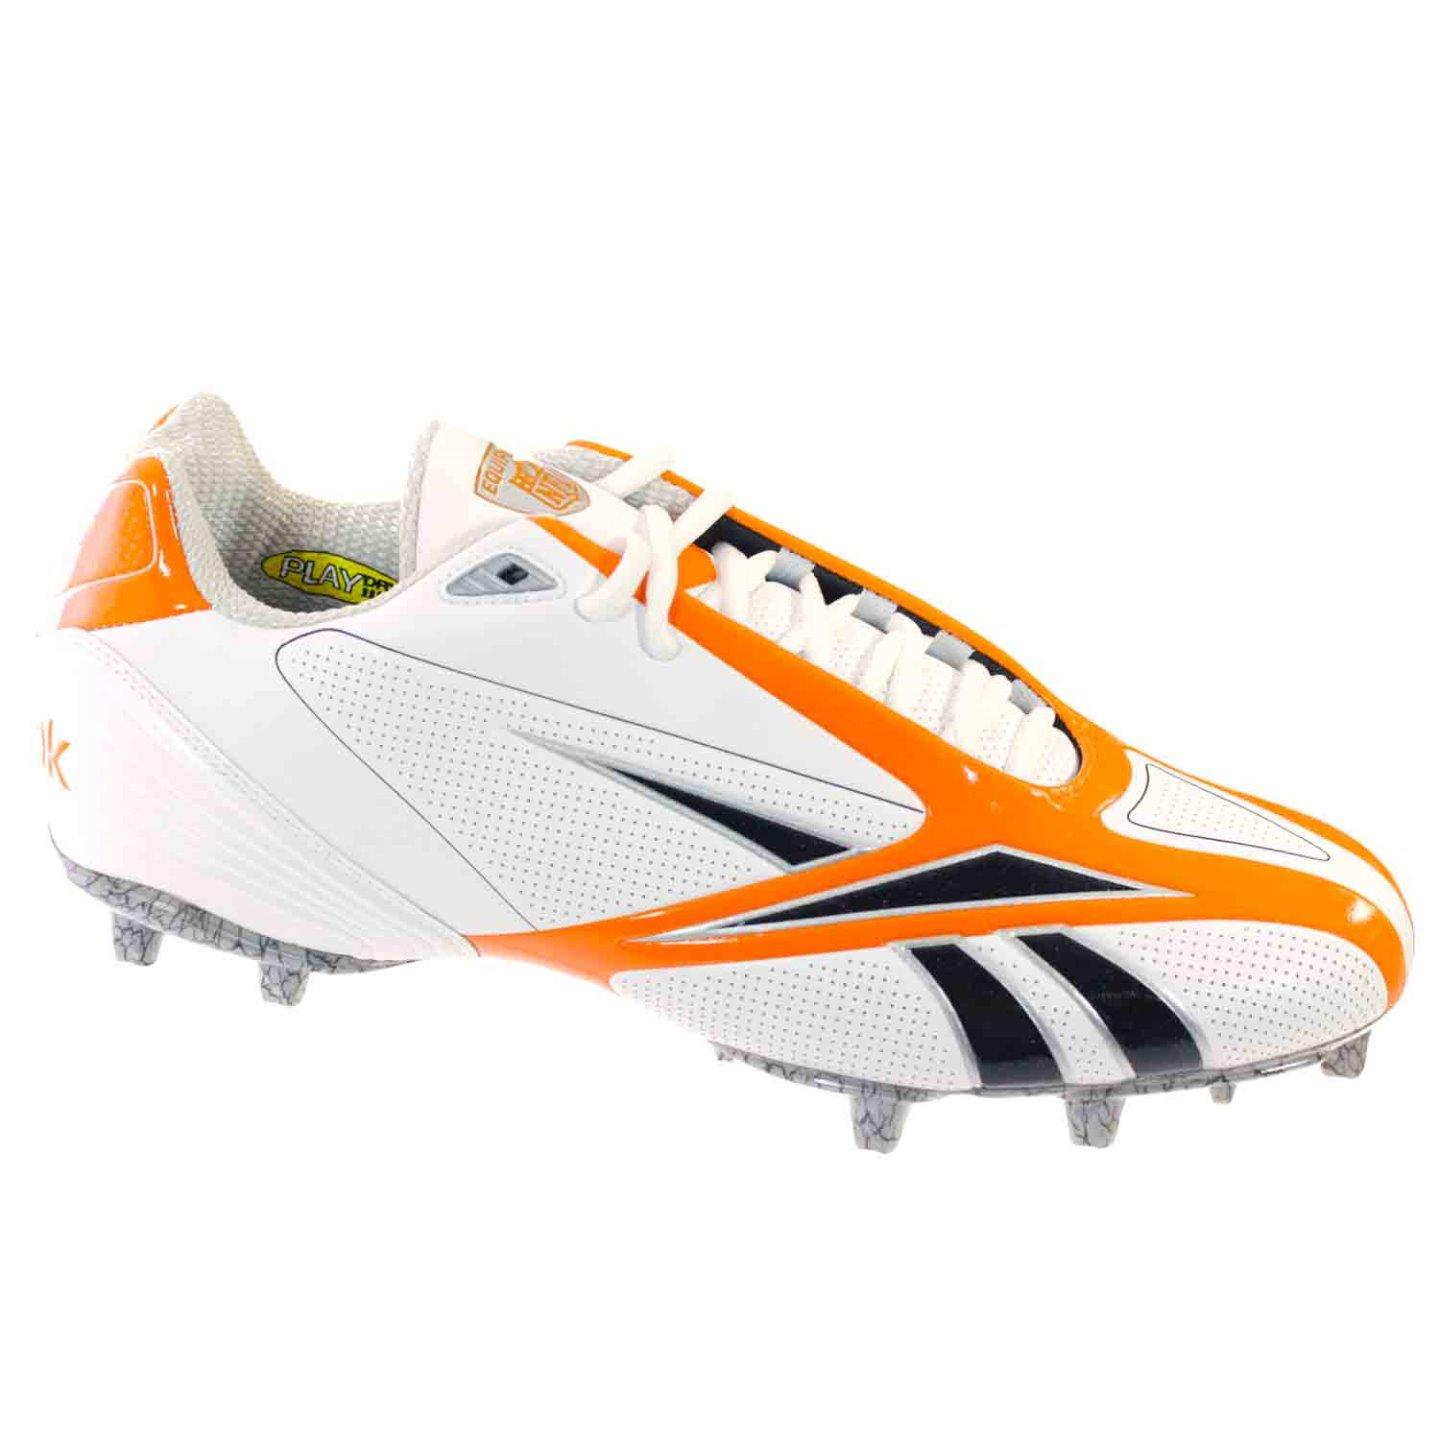 REEBOK PRO BURNER SPEED III LOW M3 MENS FOOTBALL MOLDED CLEAT WHITE ORANGE 9.5 M